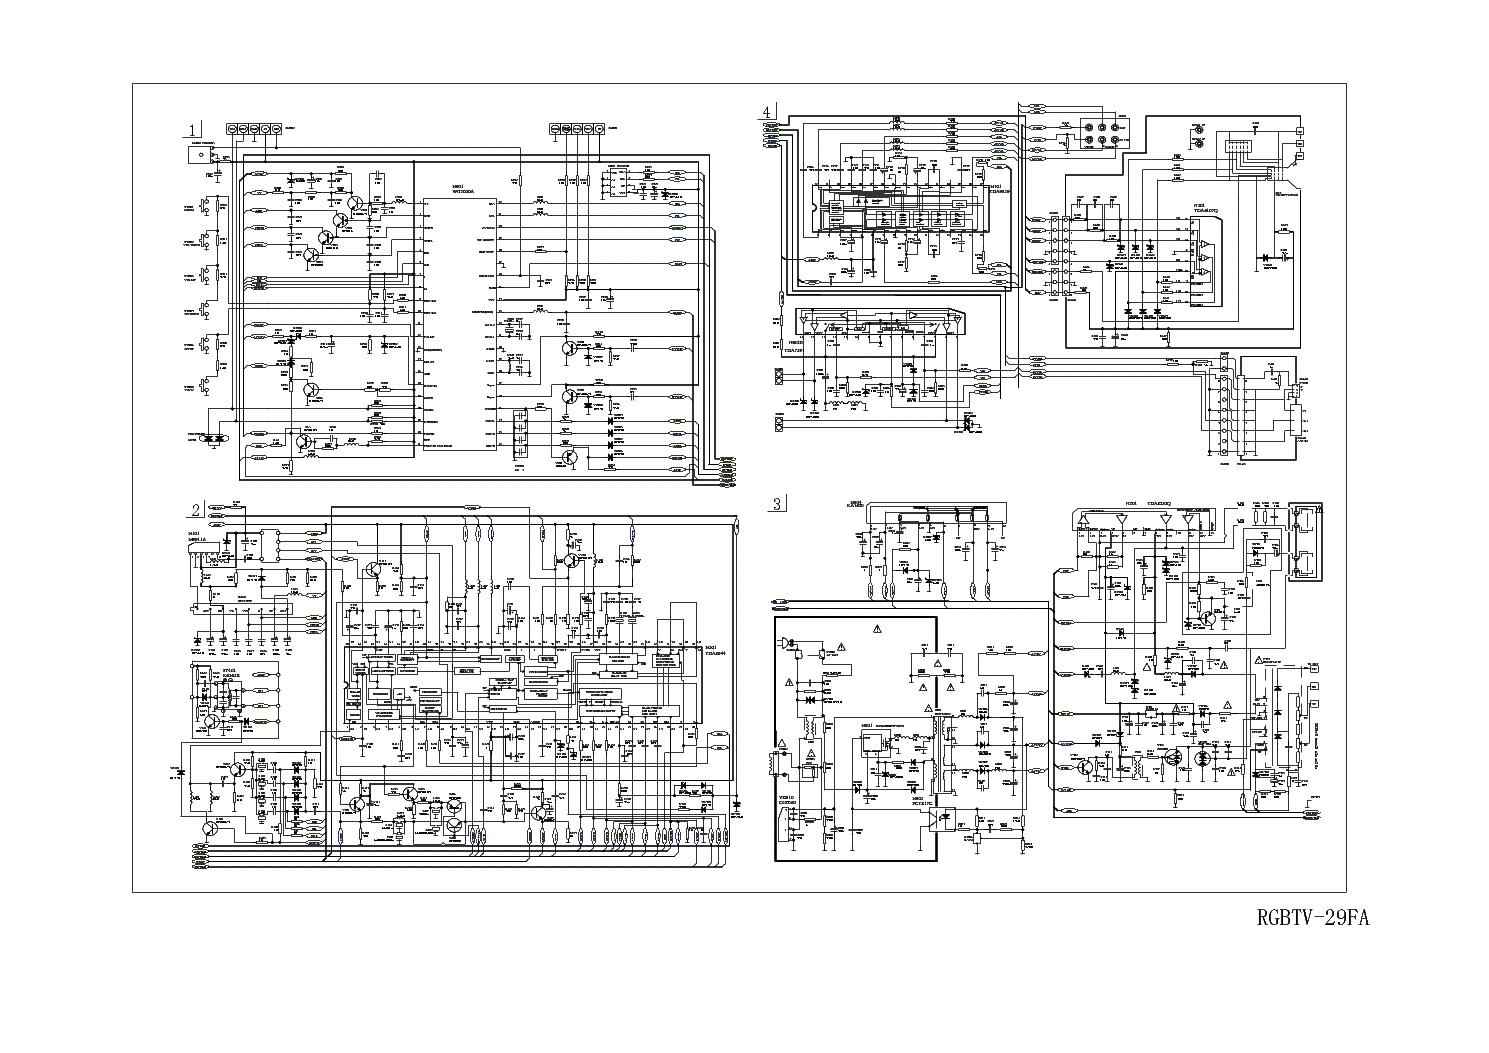 HAIER TV-29FA CIRCUIT DIAGRAM